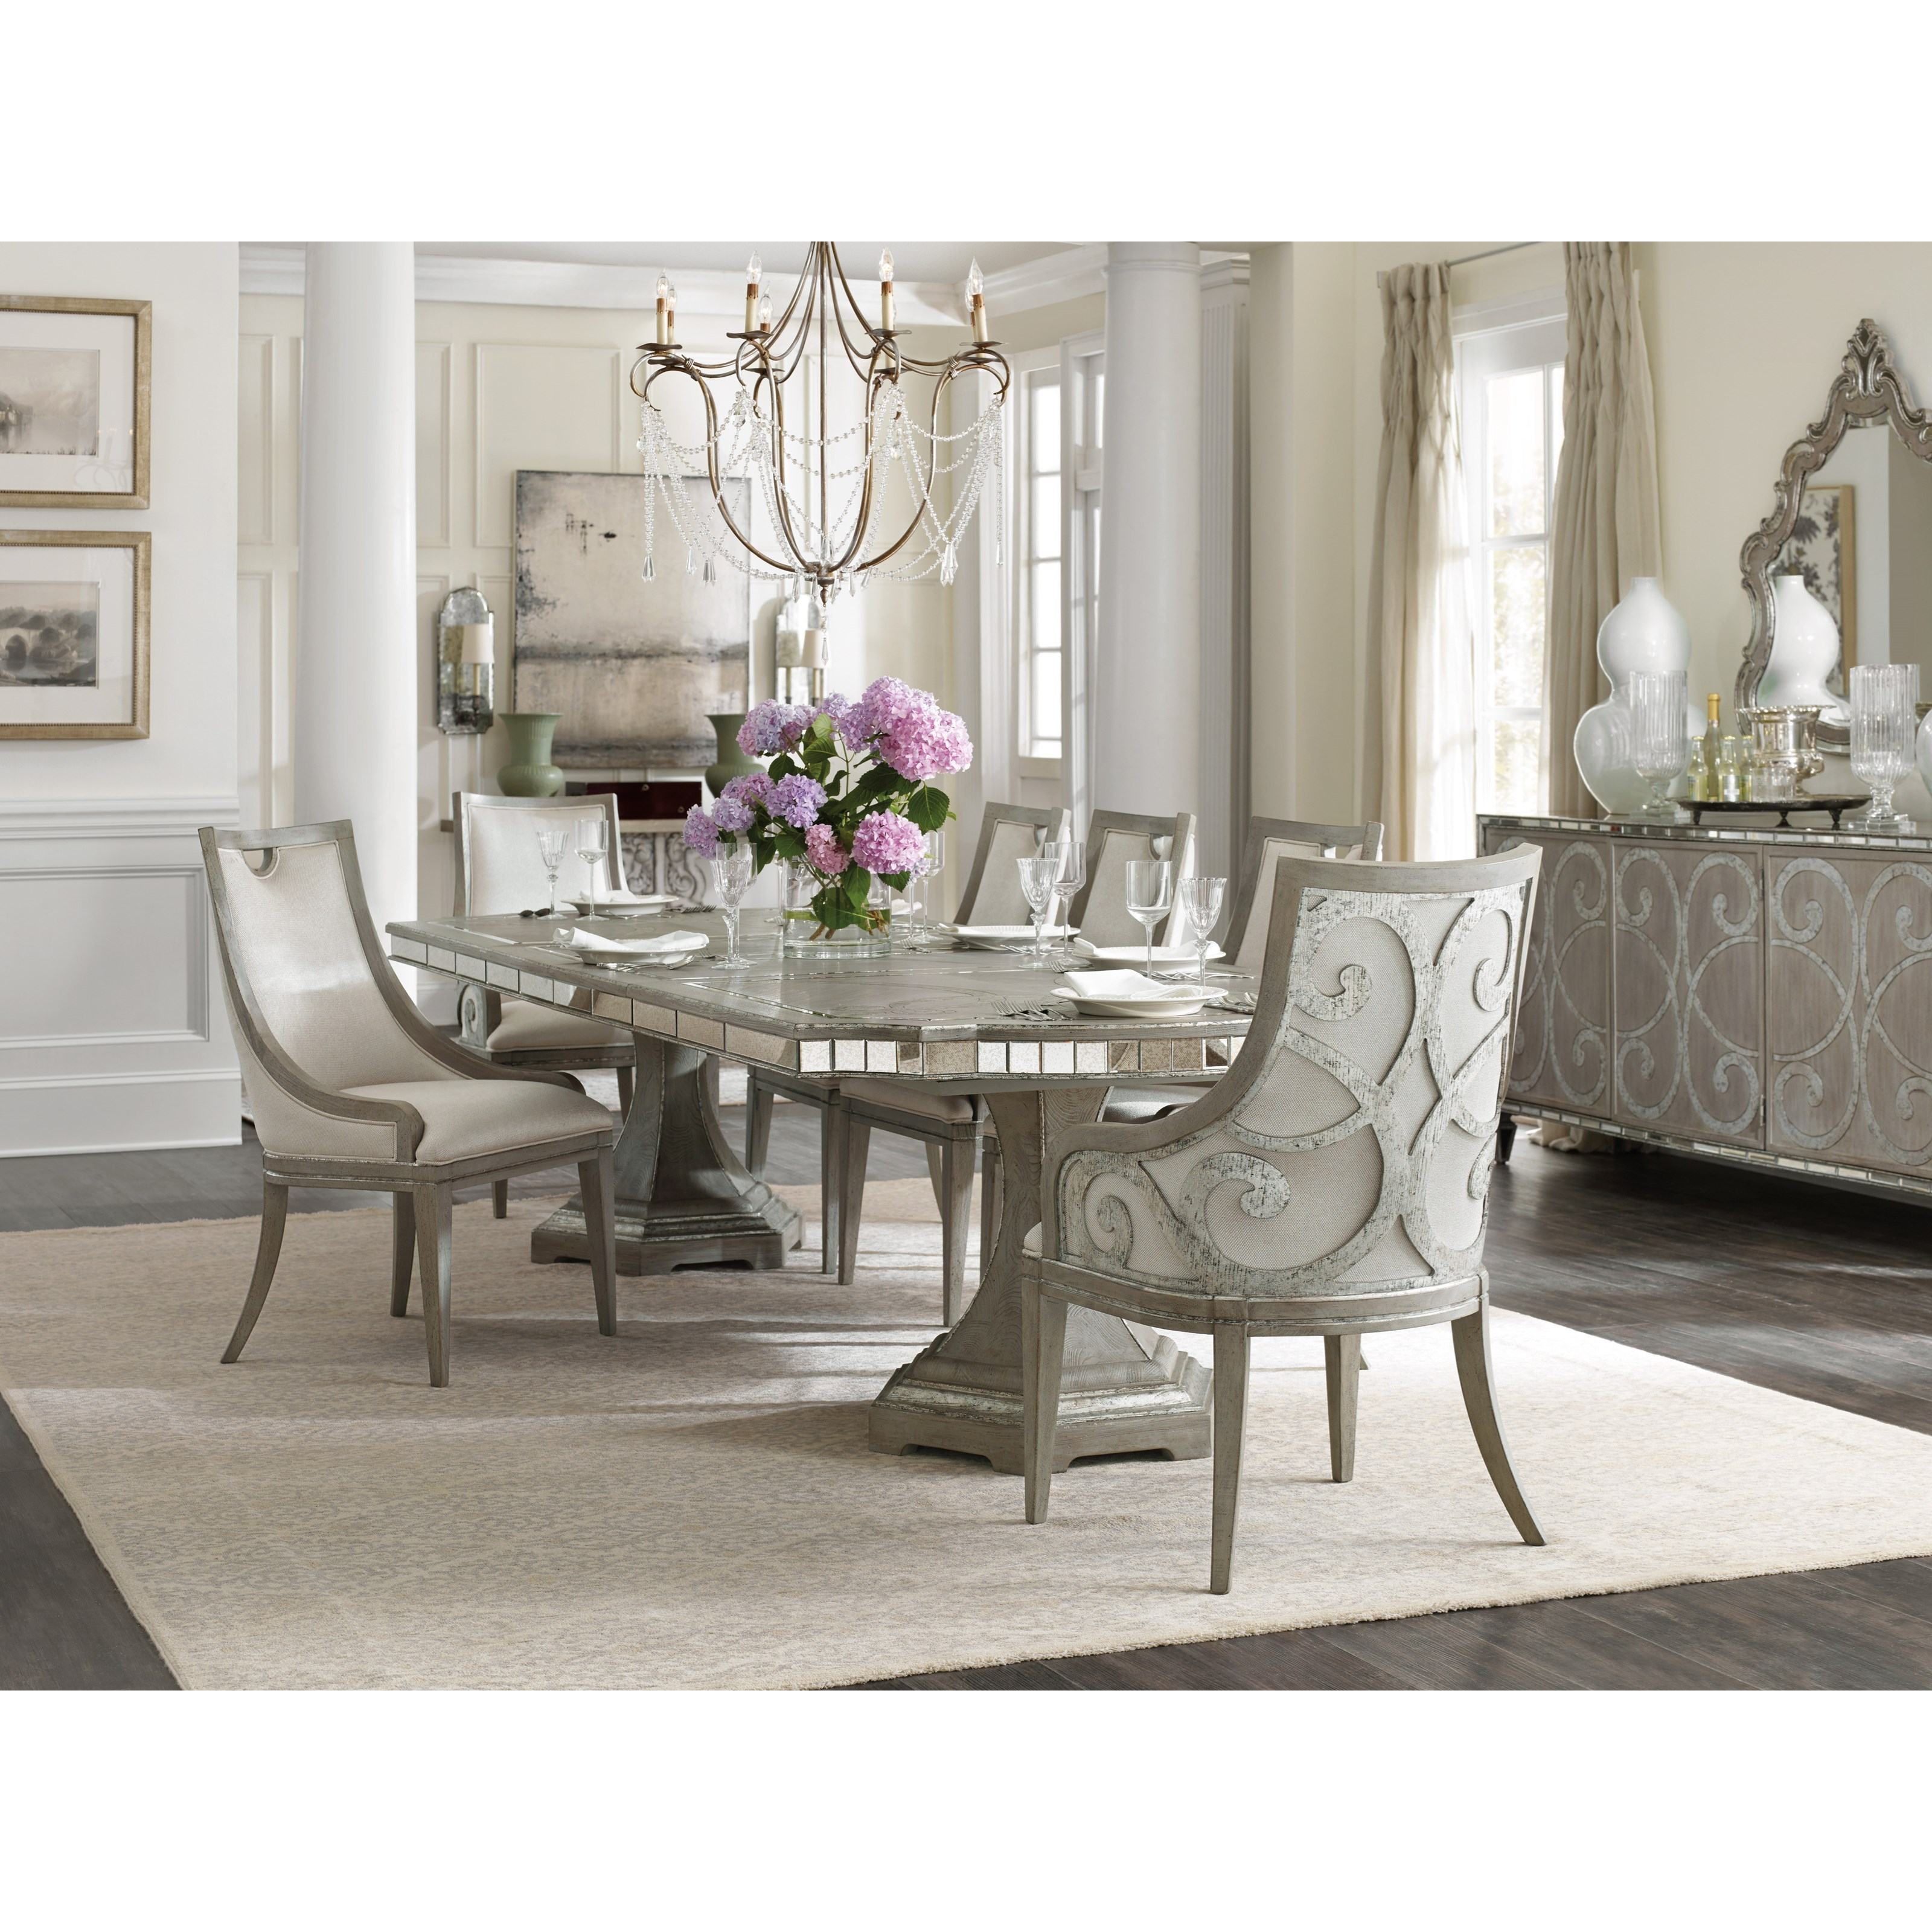 Sanctuary Formal Dining Room Group by Hooker Furniture at Miller Waldrop Furniture and Decor